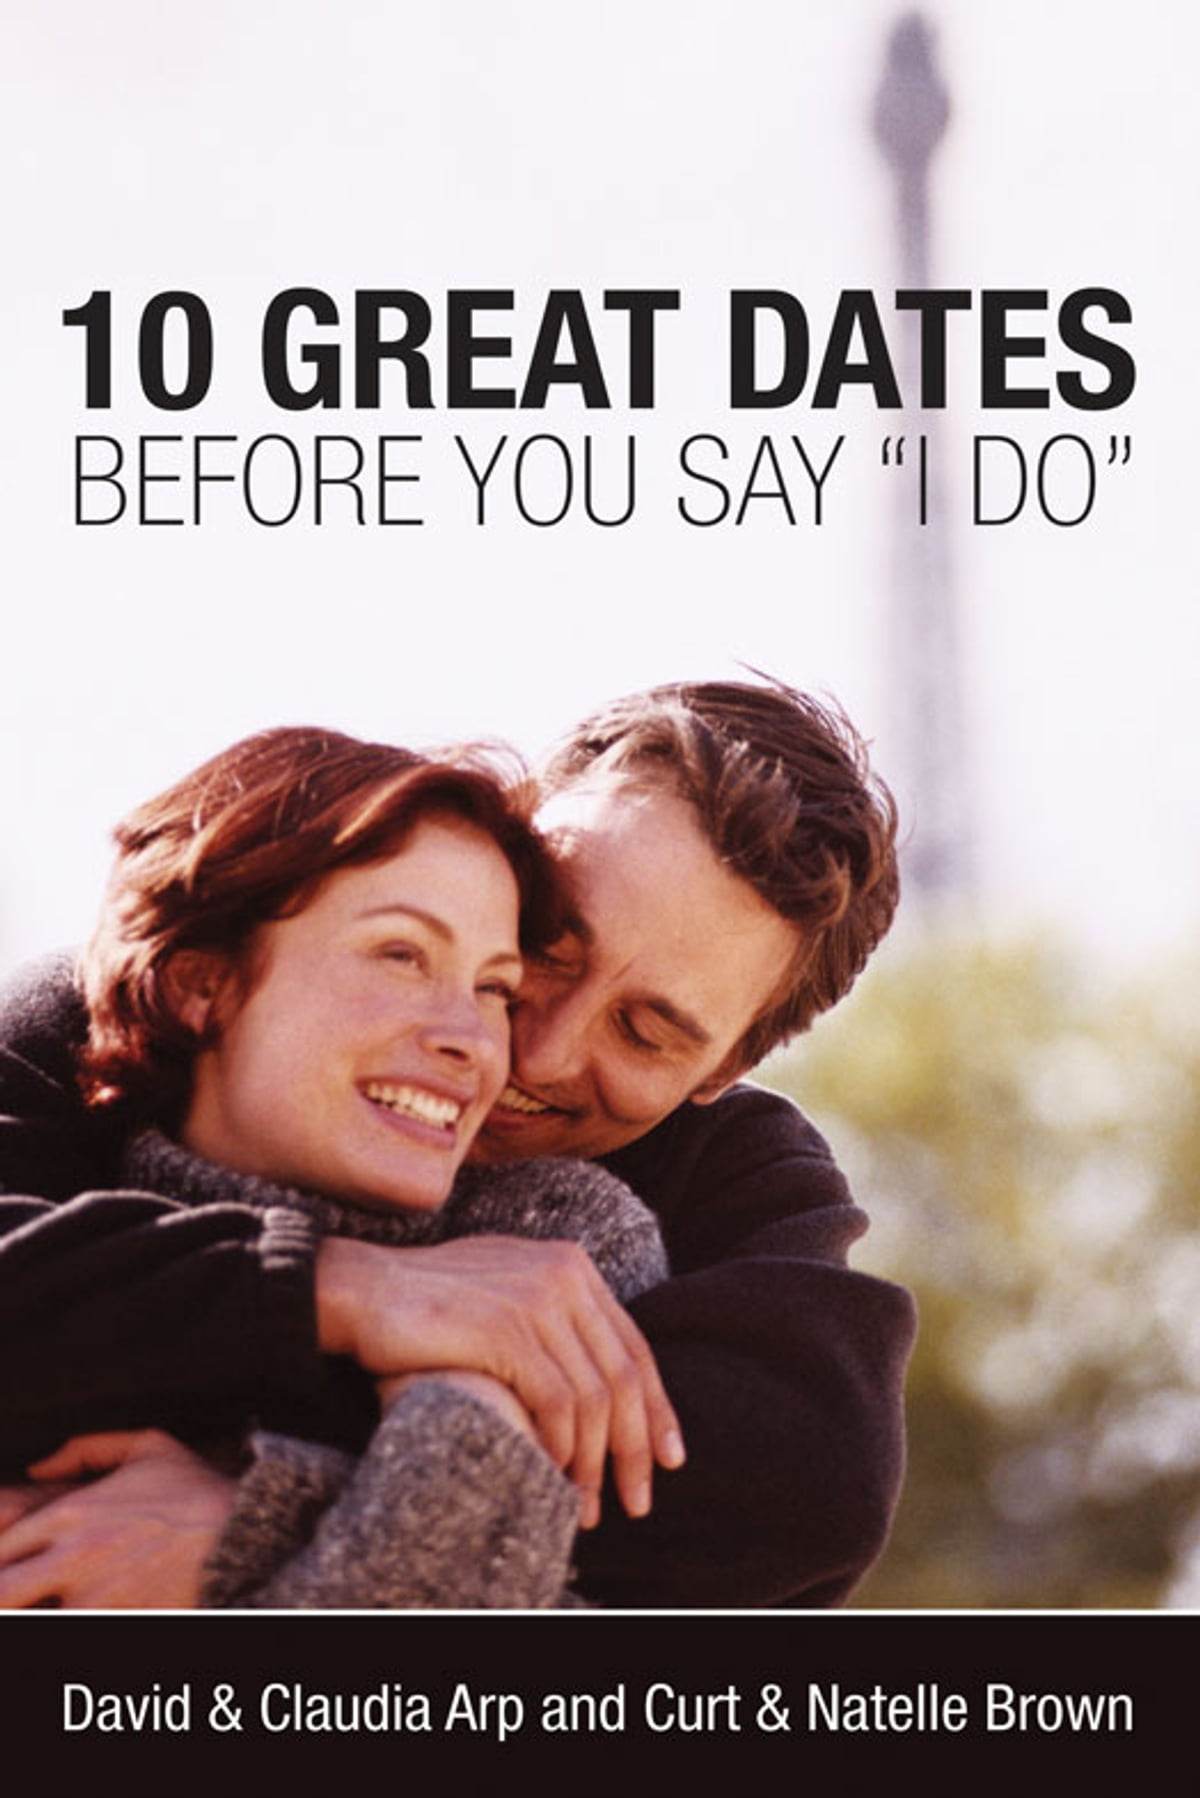 10 great dates before you say i do ebook by david and claudia 10 great dates before you say i do ebook by david and claudia arp 9780310316121 rakuten kobo fandeluxe Ebook collections